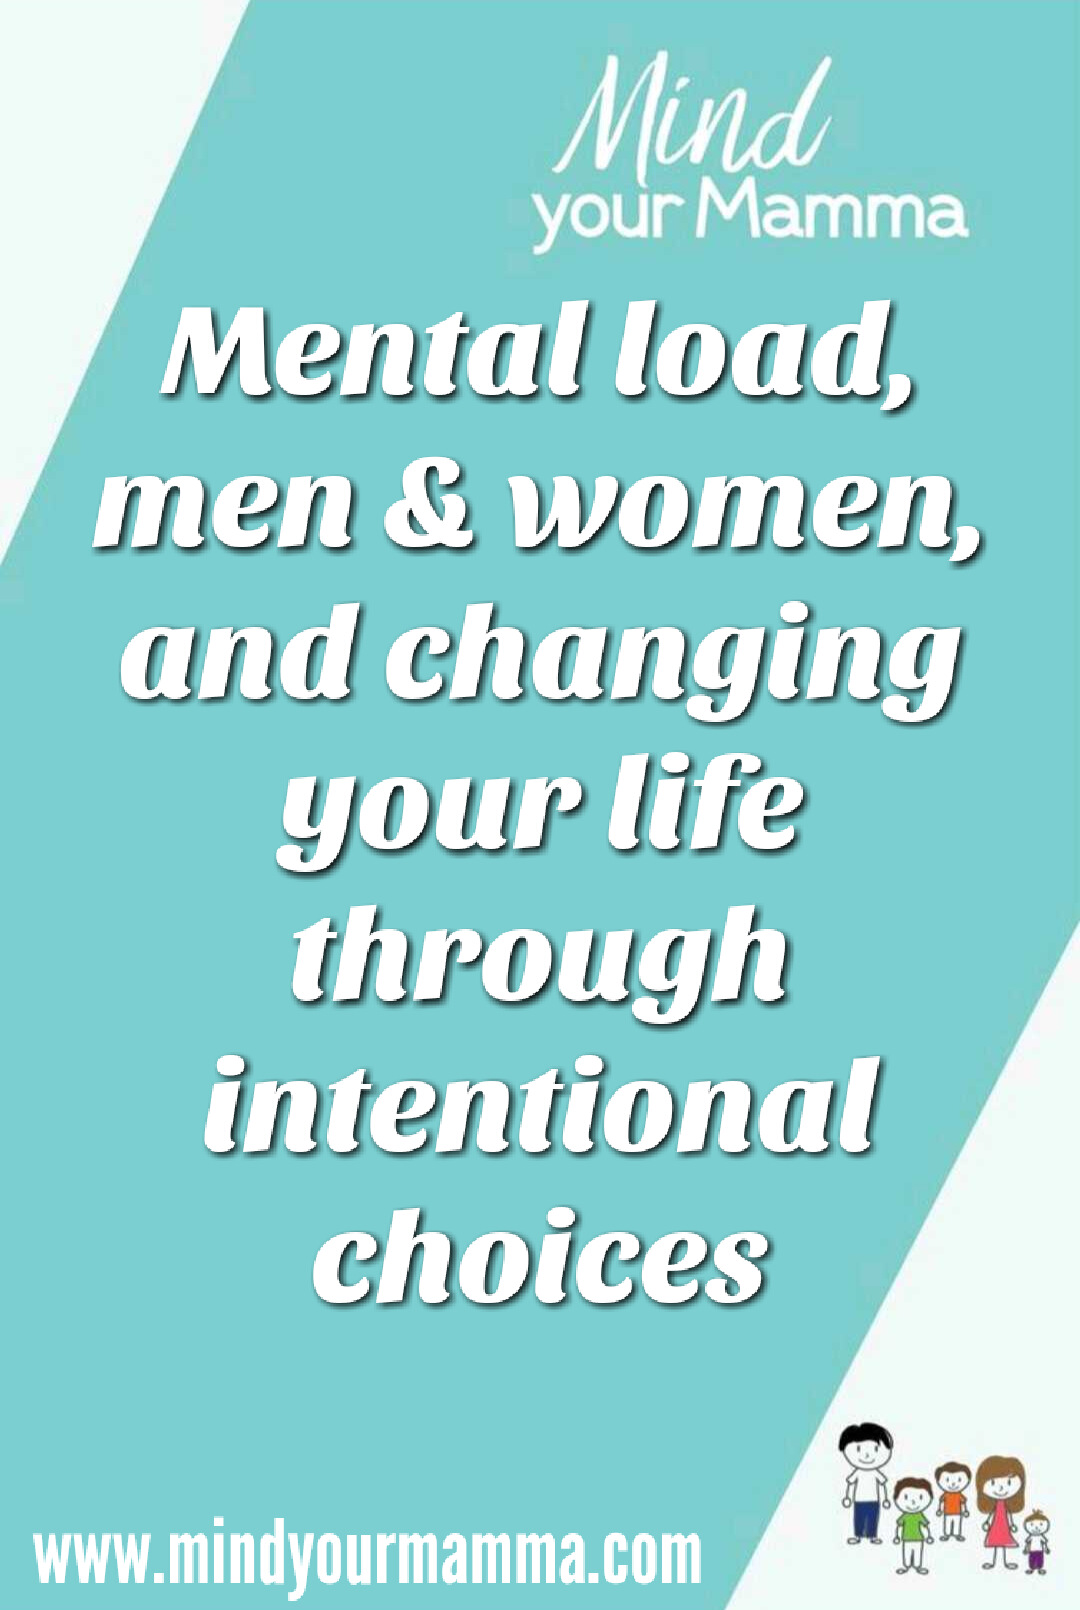 mental load men & women and changing your life through intentional choices Mind your Mamma